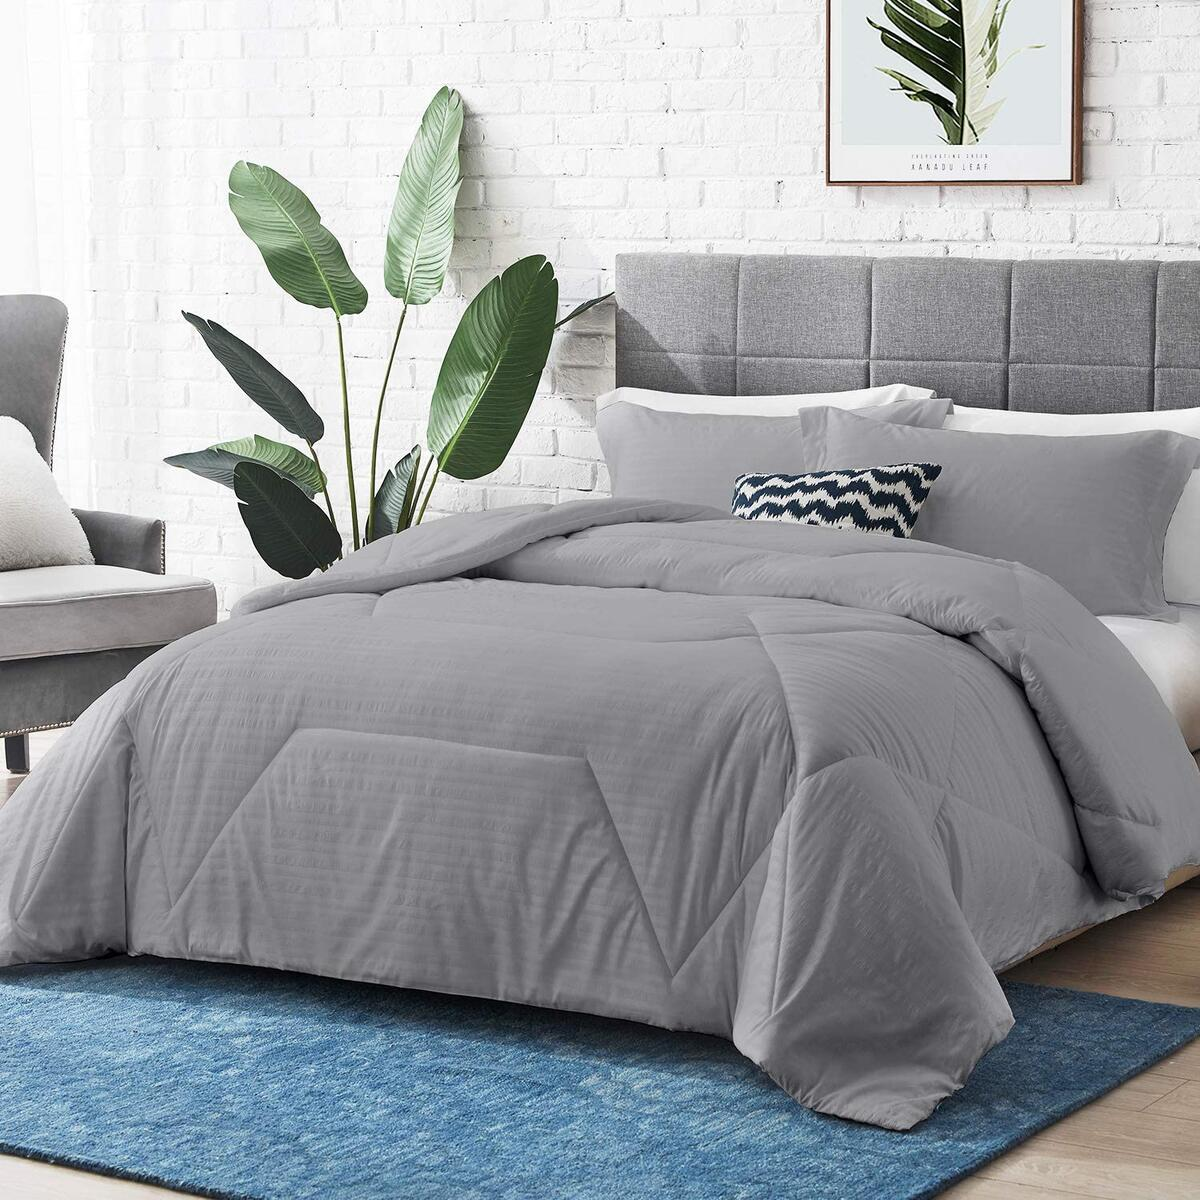 """Hansleep Pillow Shams Set of 2 Standard Size, Bedding Embossed Ultra Soft Brushed Pillow Sham, Machine Washable (Grey, Queen 20x30"""")"""